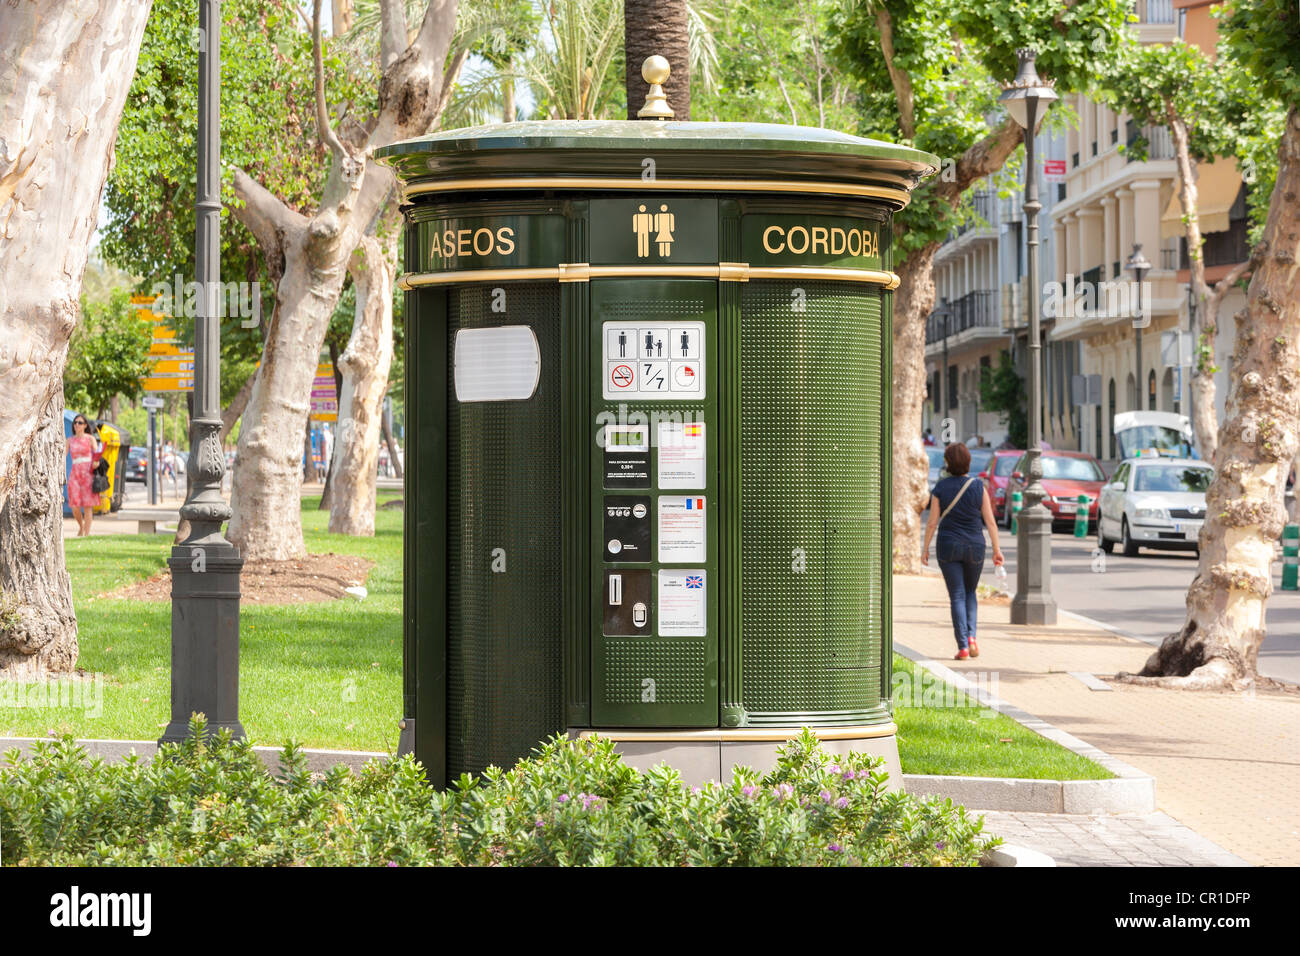 Public unisex self-cleaning automated conveniences, bathroom, toilets, restrooms, facilities, superloo in Cordoba - Stock Image